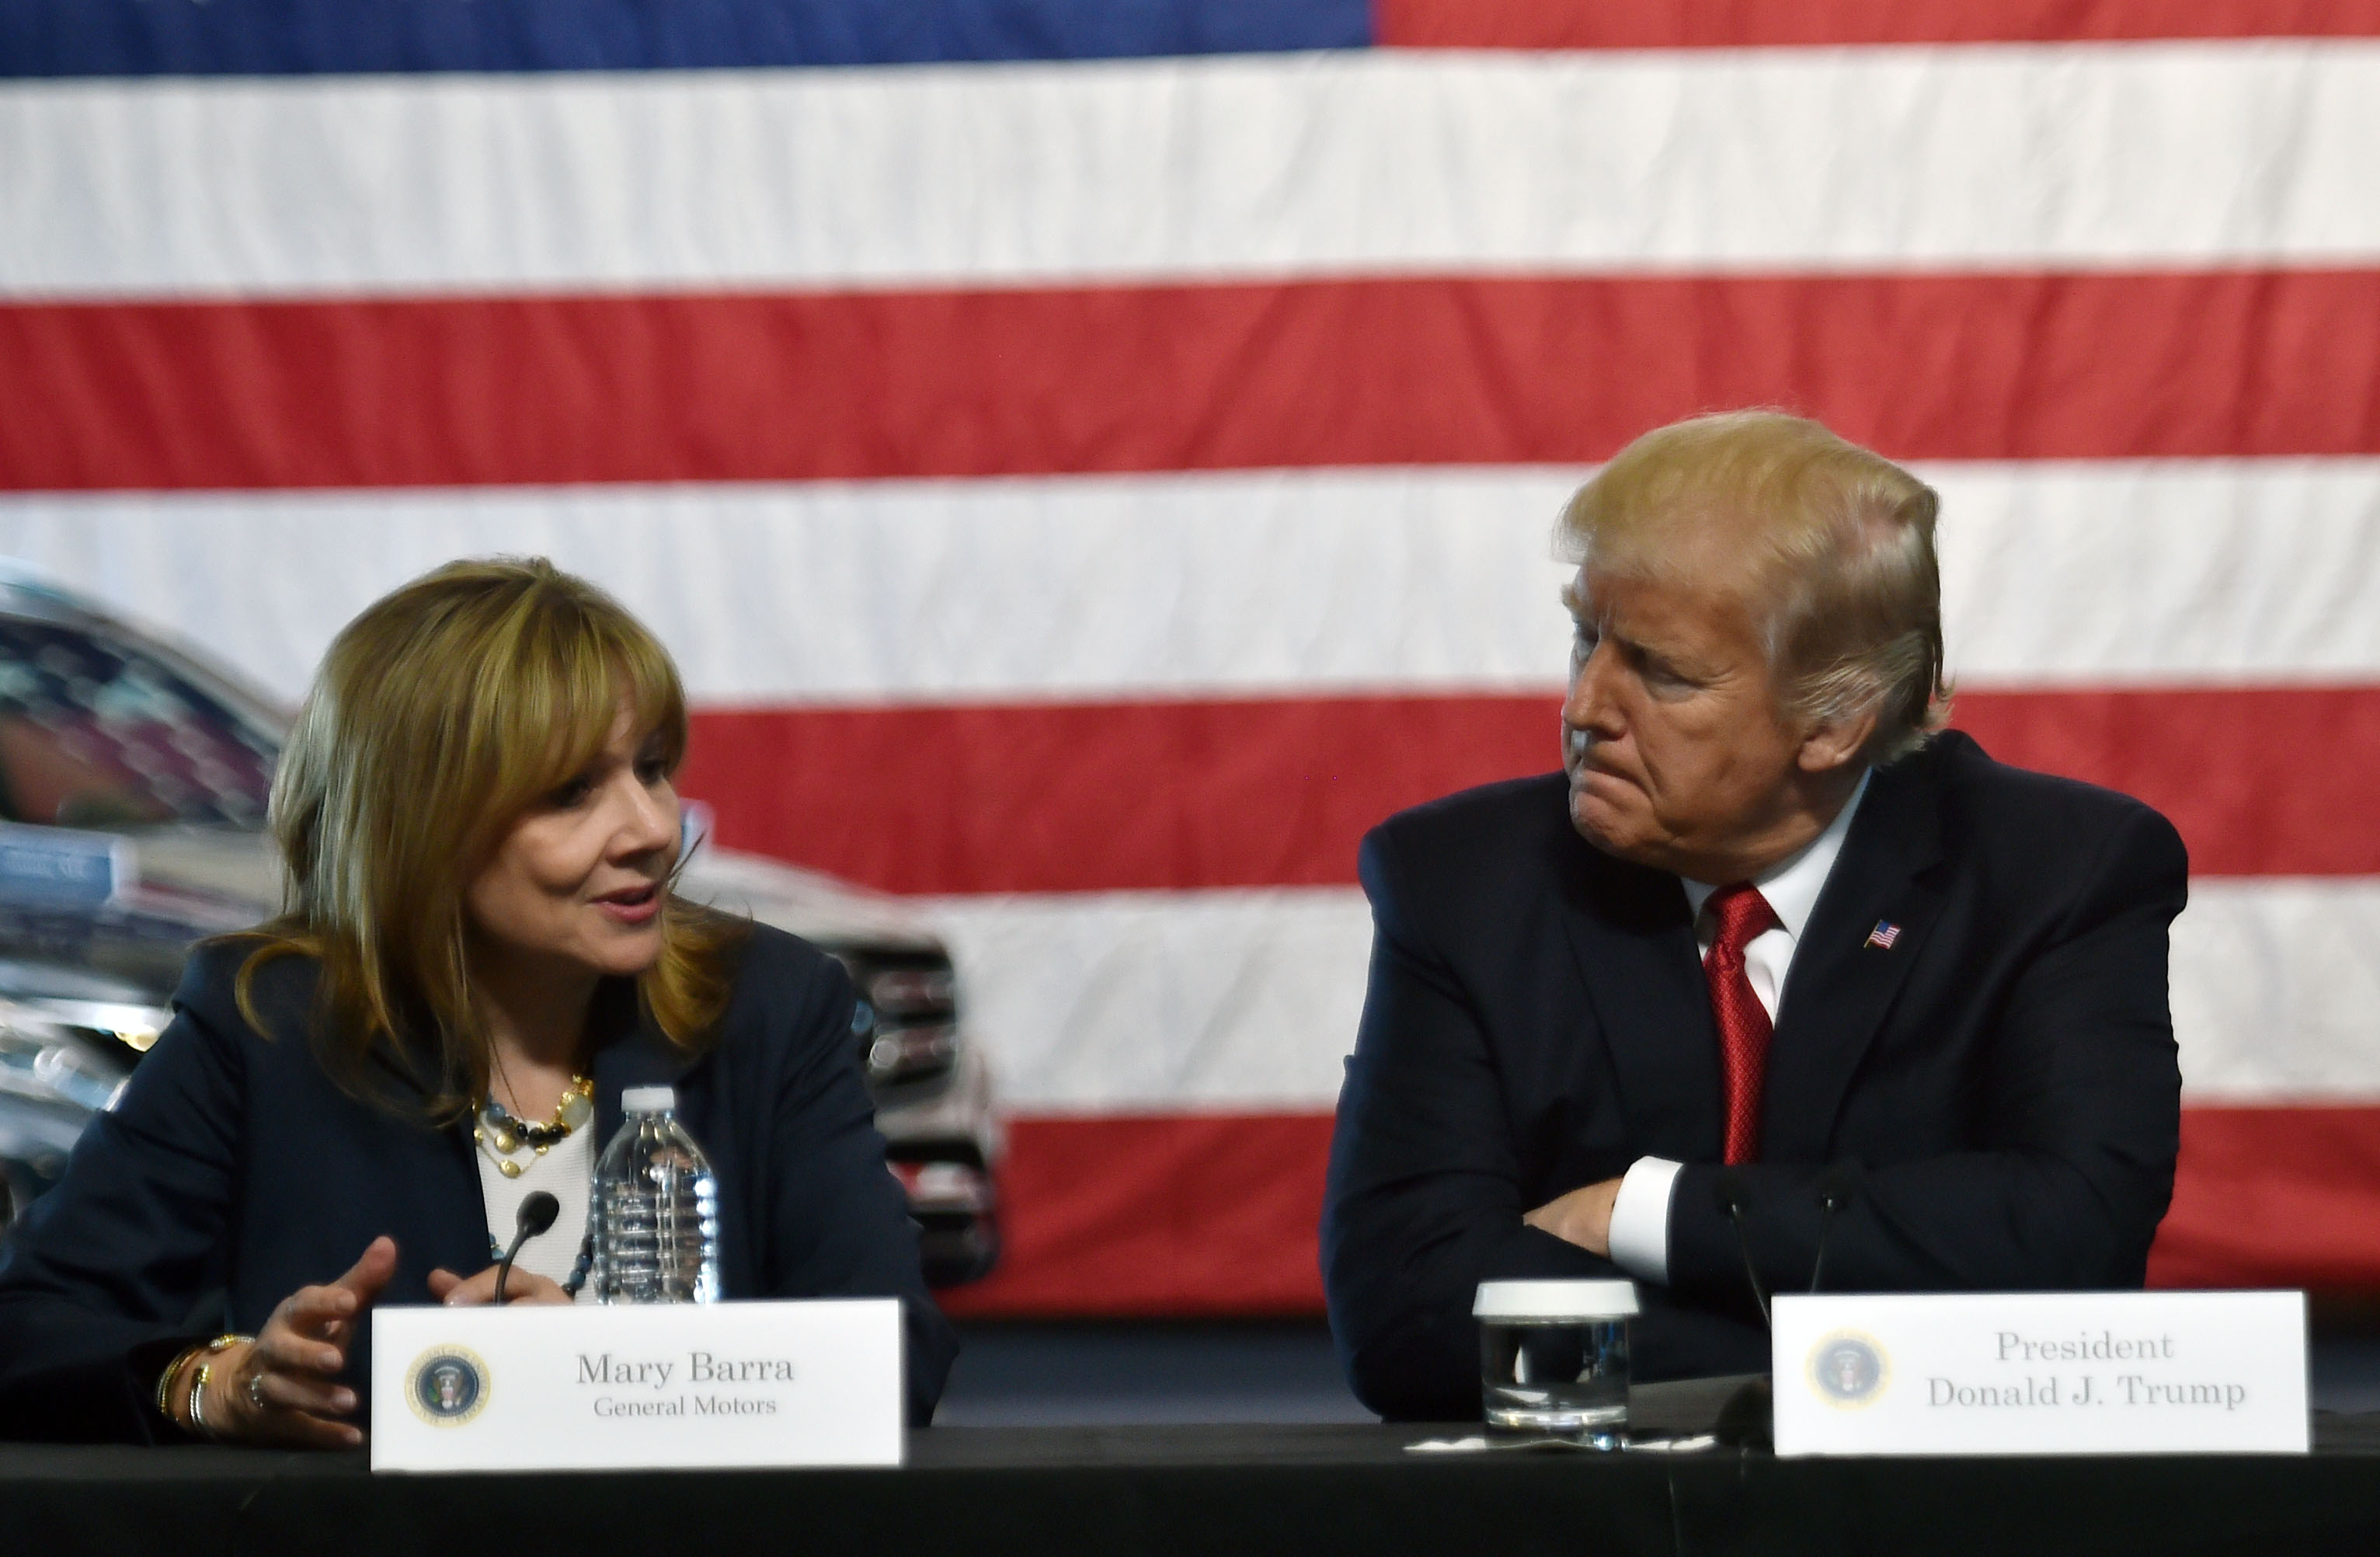 US President Donald Trump speaks at American Center for Mobility in Ypsilanti, Michigan with General Motors CEO Mary Barra on March 15, 2017. / AFP PHOTO / Nicholas Kamm (Photo credit should read NICHOLAS KAMM/AFP/Getty Images)